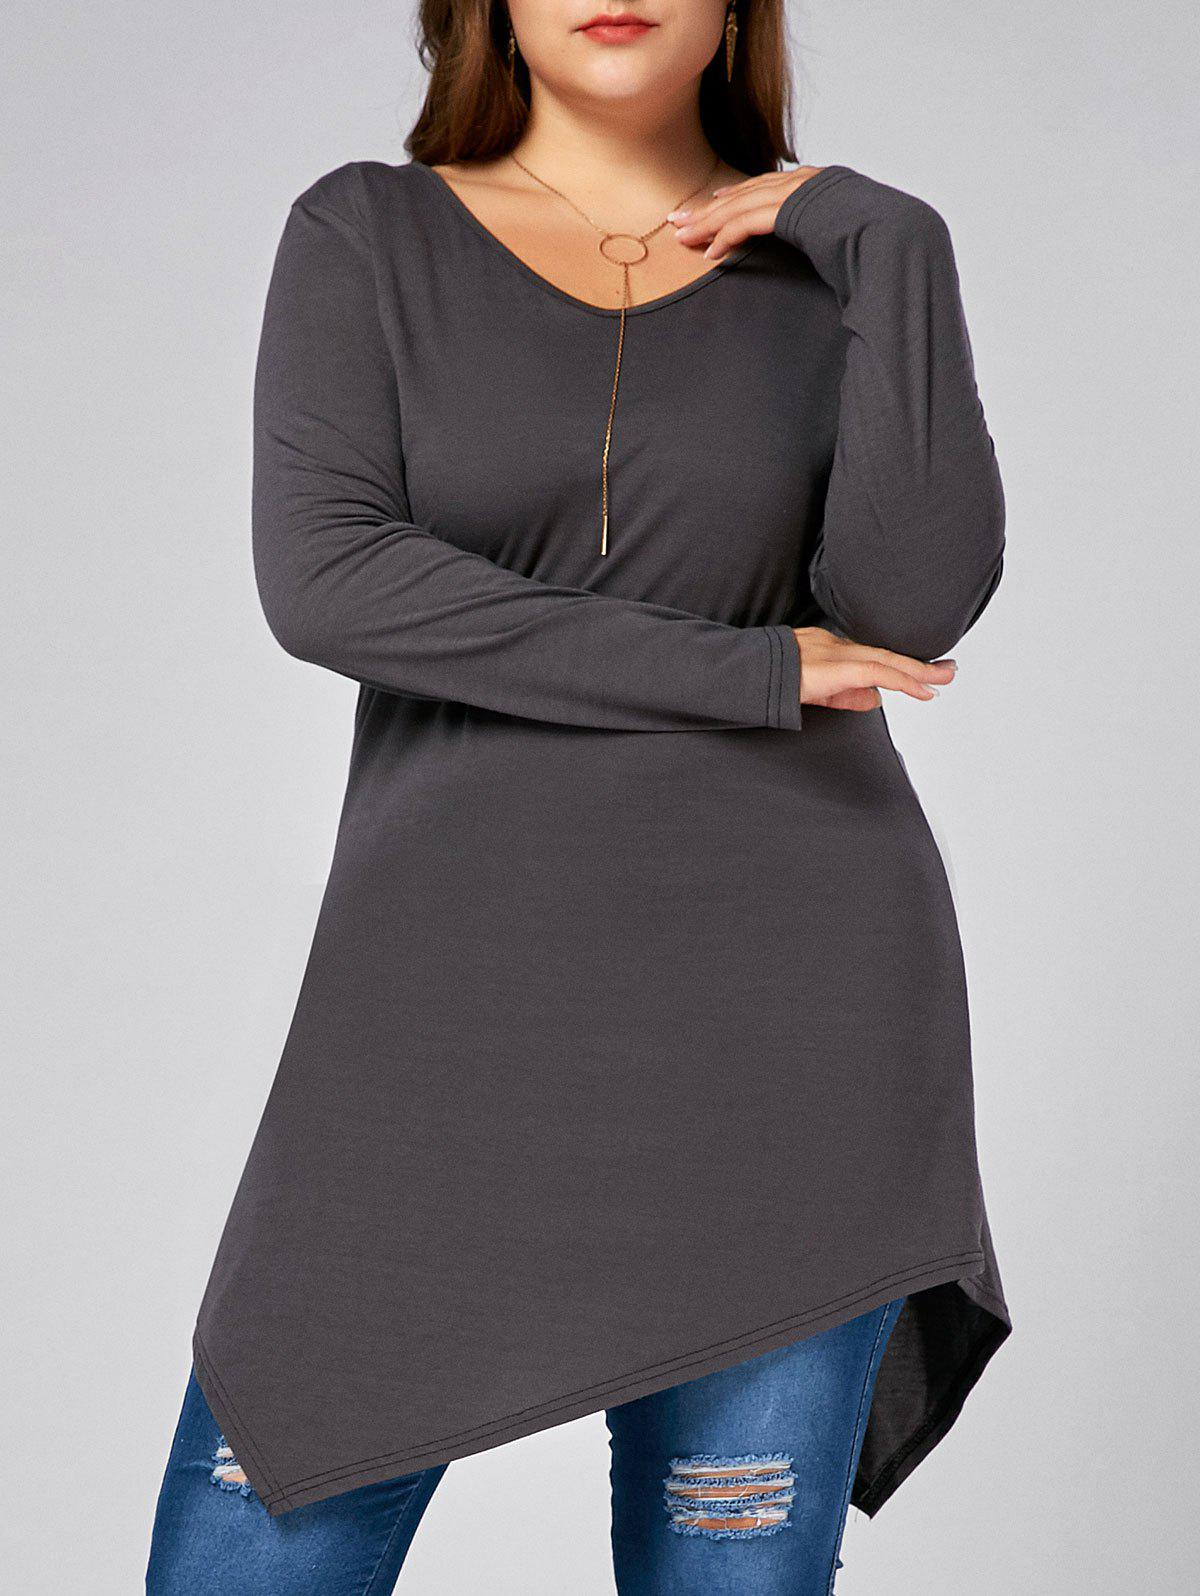 V Neck Long Sleeve Plus Size Asymmetric T-shirtWOMEN<br><br>Size: 3XL; Color: GRAY; Material: Cotton Blends,Polyester; Shirt Length: Long; Sleeve Length: Full; Collar: V-Neck; Style: Casual; Season: Fall,Winter; Pattern Type: Solid; Weight: 0.3300kg; Package Contents: 1 x Tee;